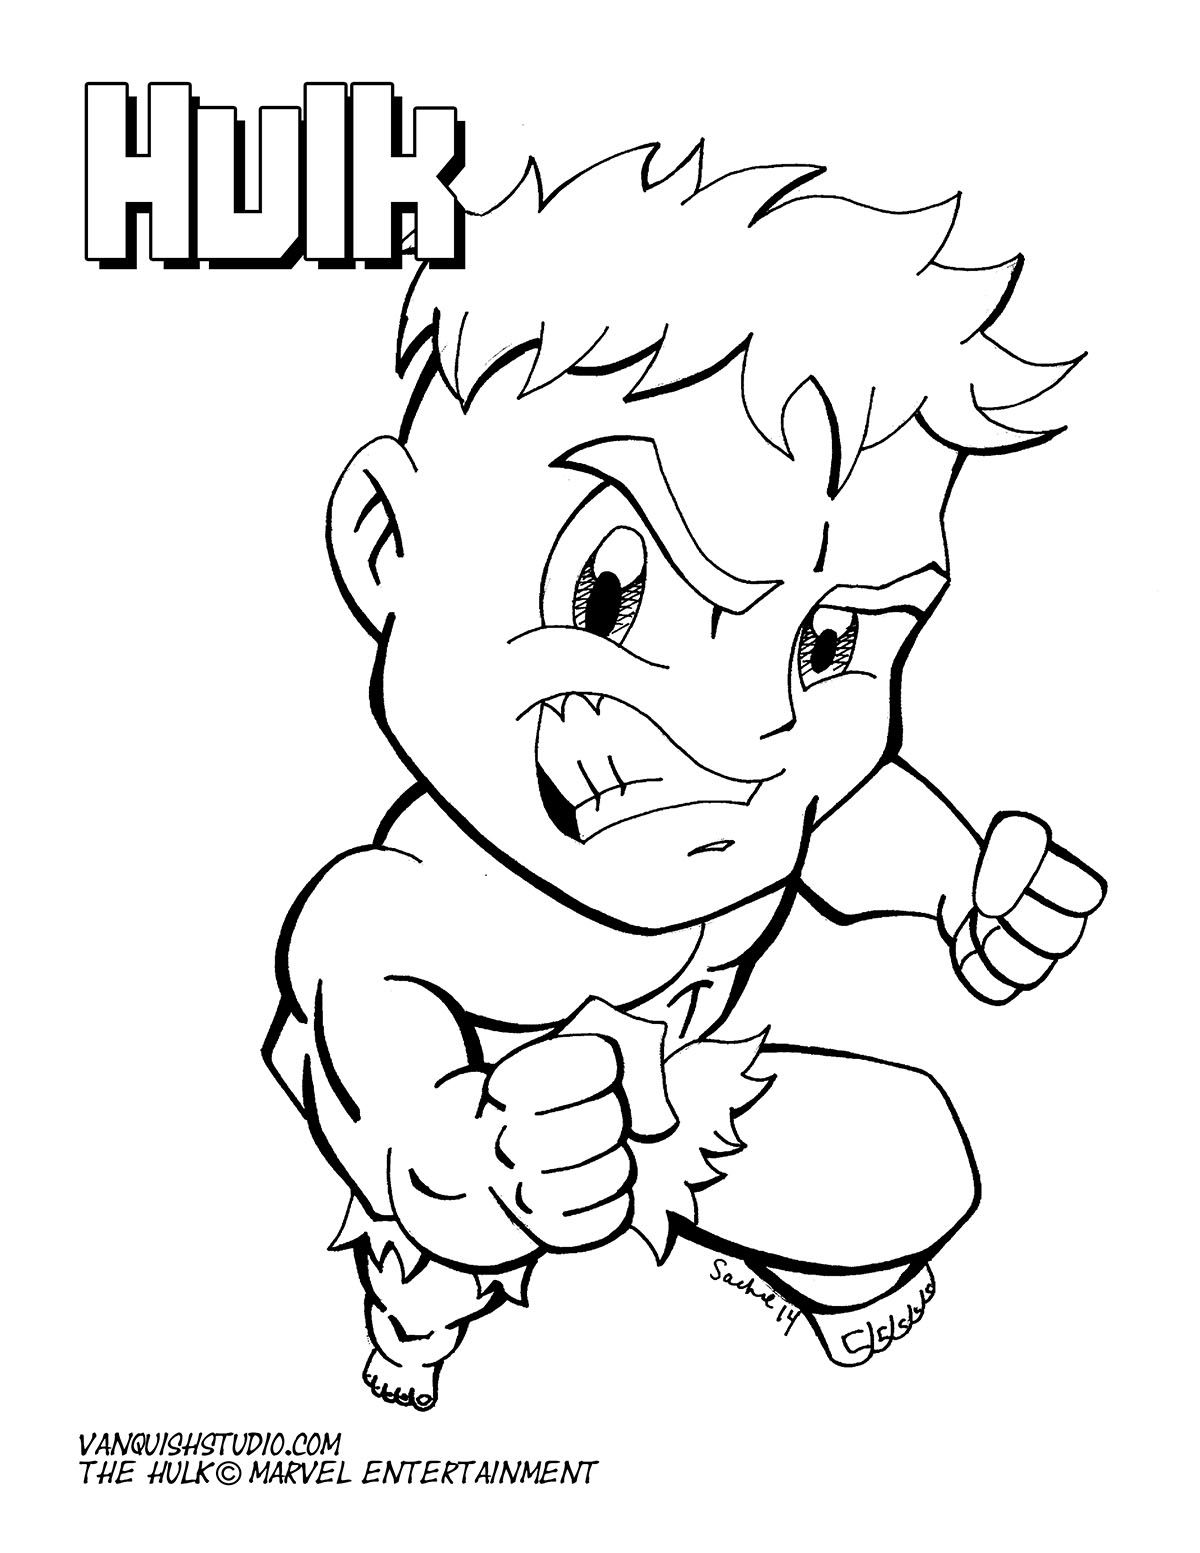 Superhero Coloring Pages Superhero Coloring Pages Chibi